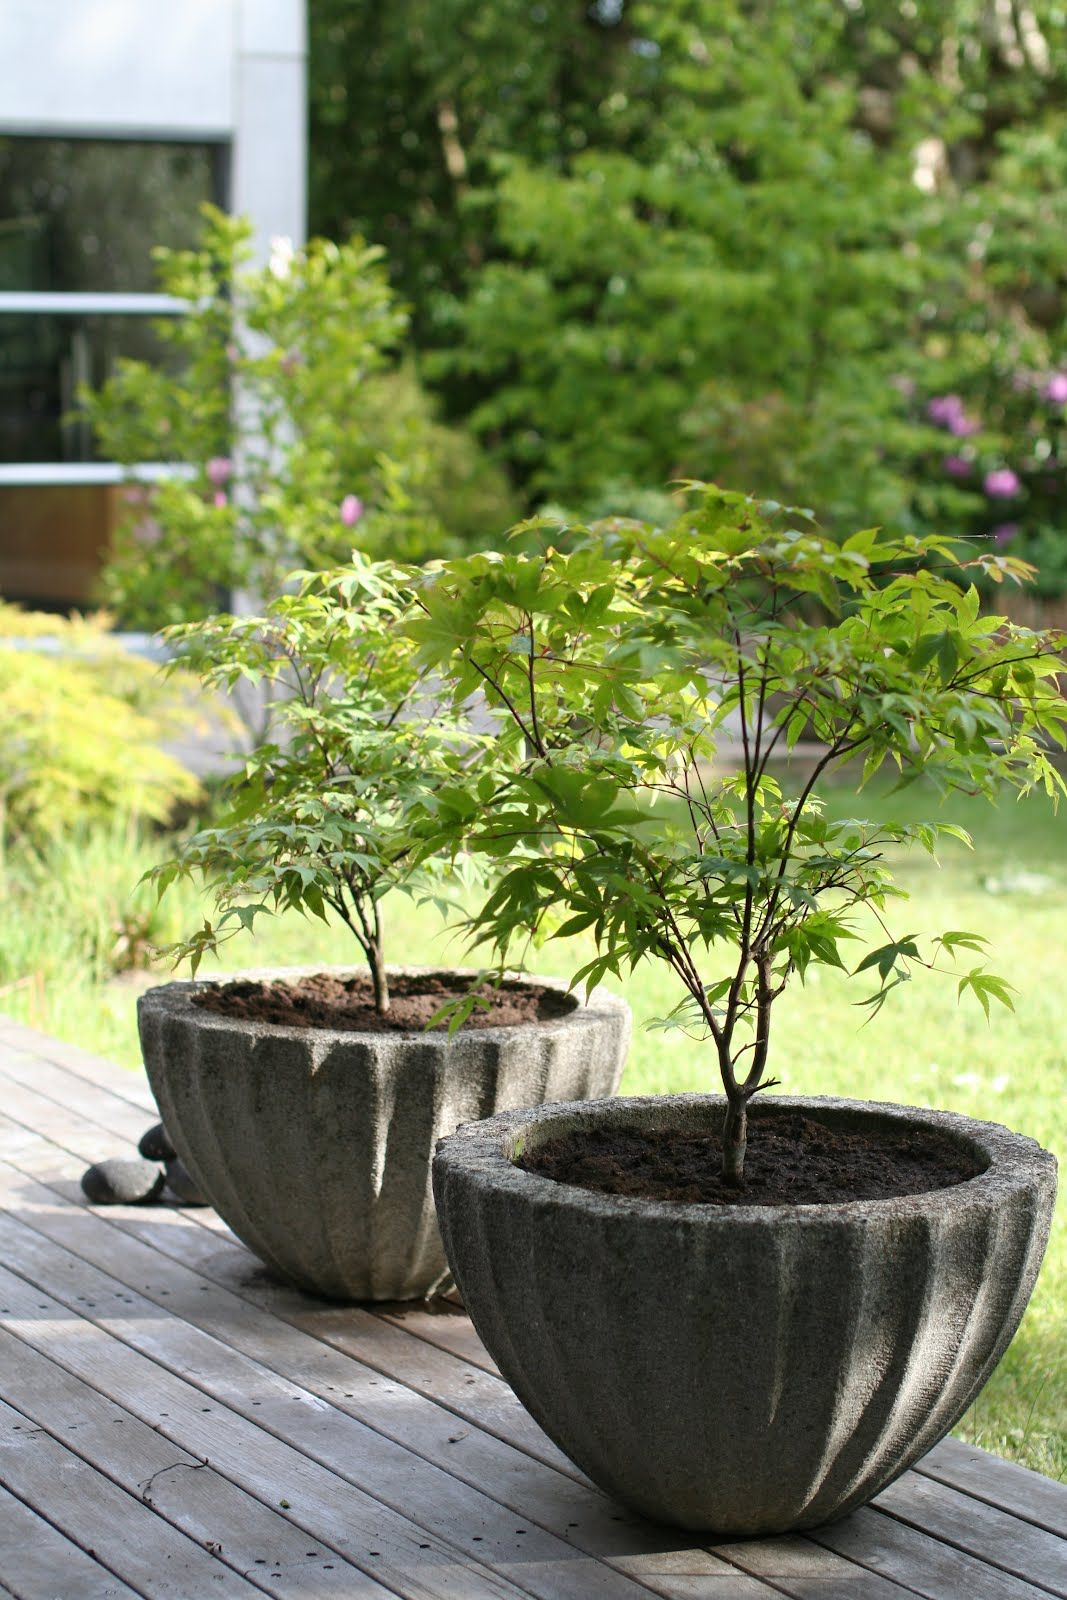 Awesome concrete pots with Japanese maple trees Perfect for your deck porch patio